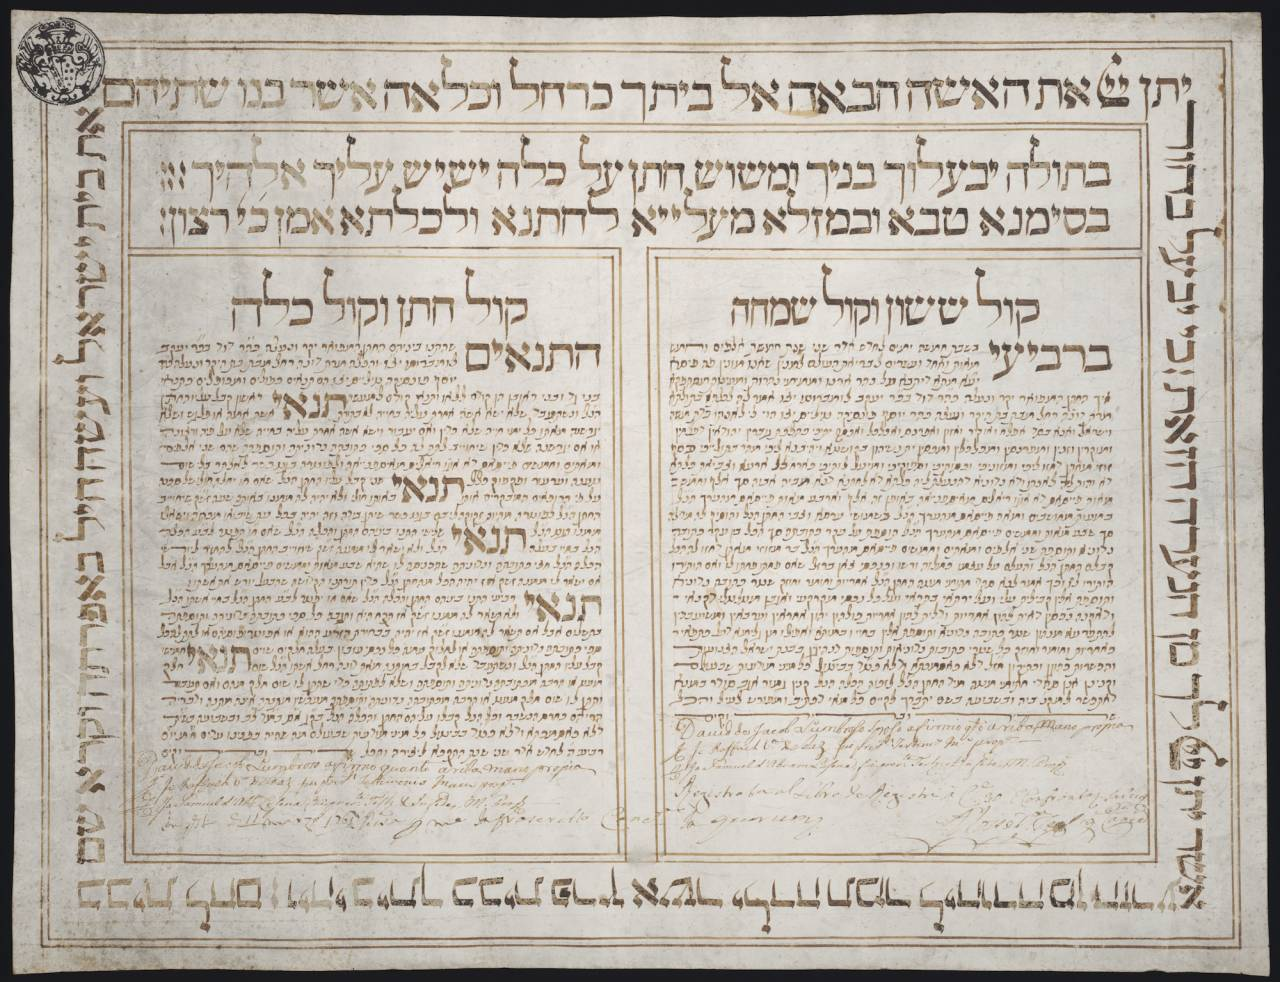 Ketubah : Pisa, Italy, 1761, March 11